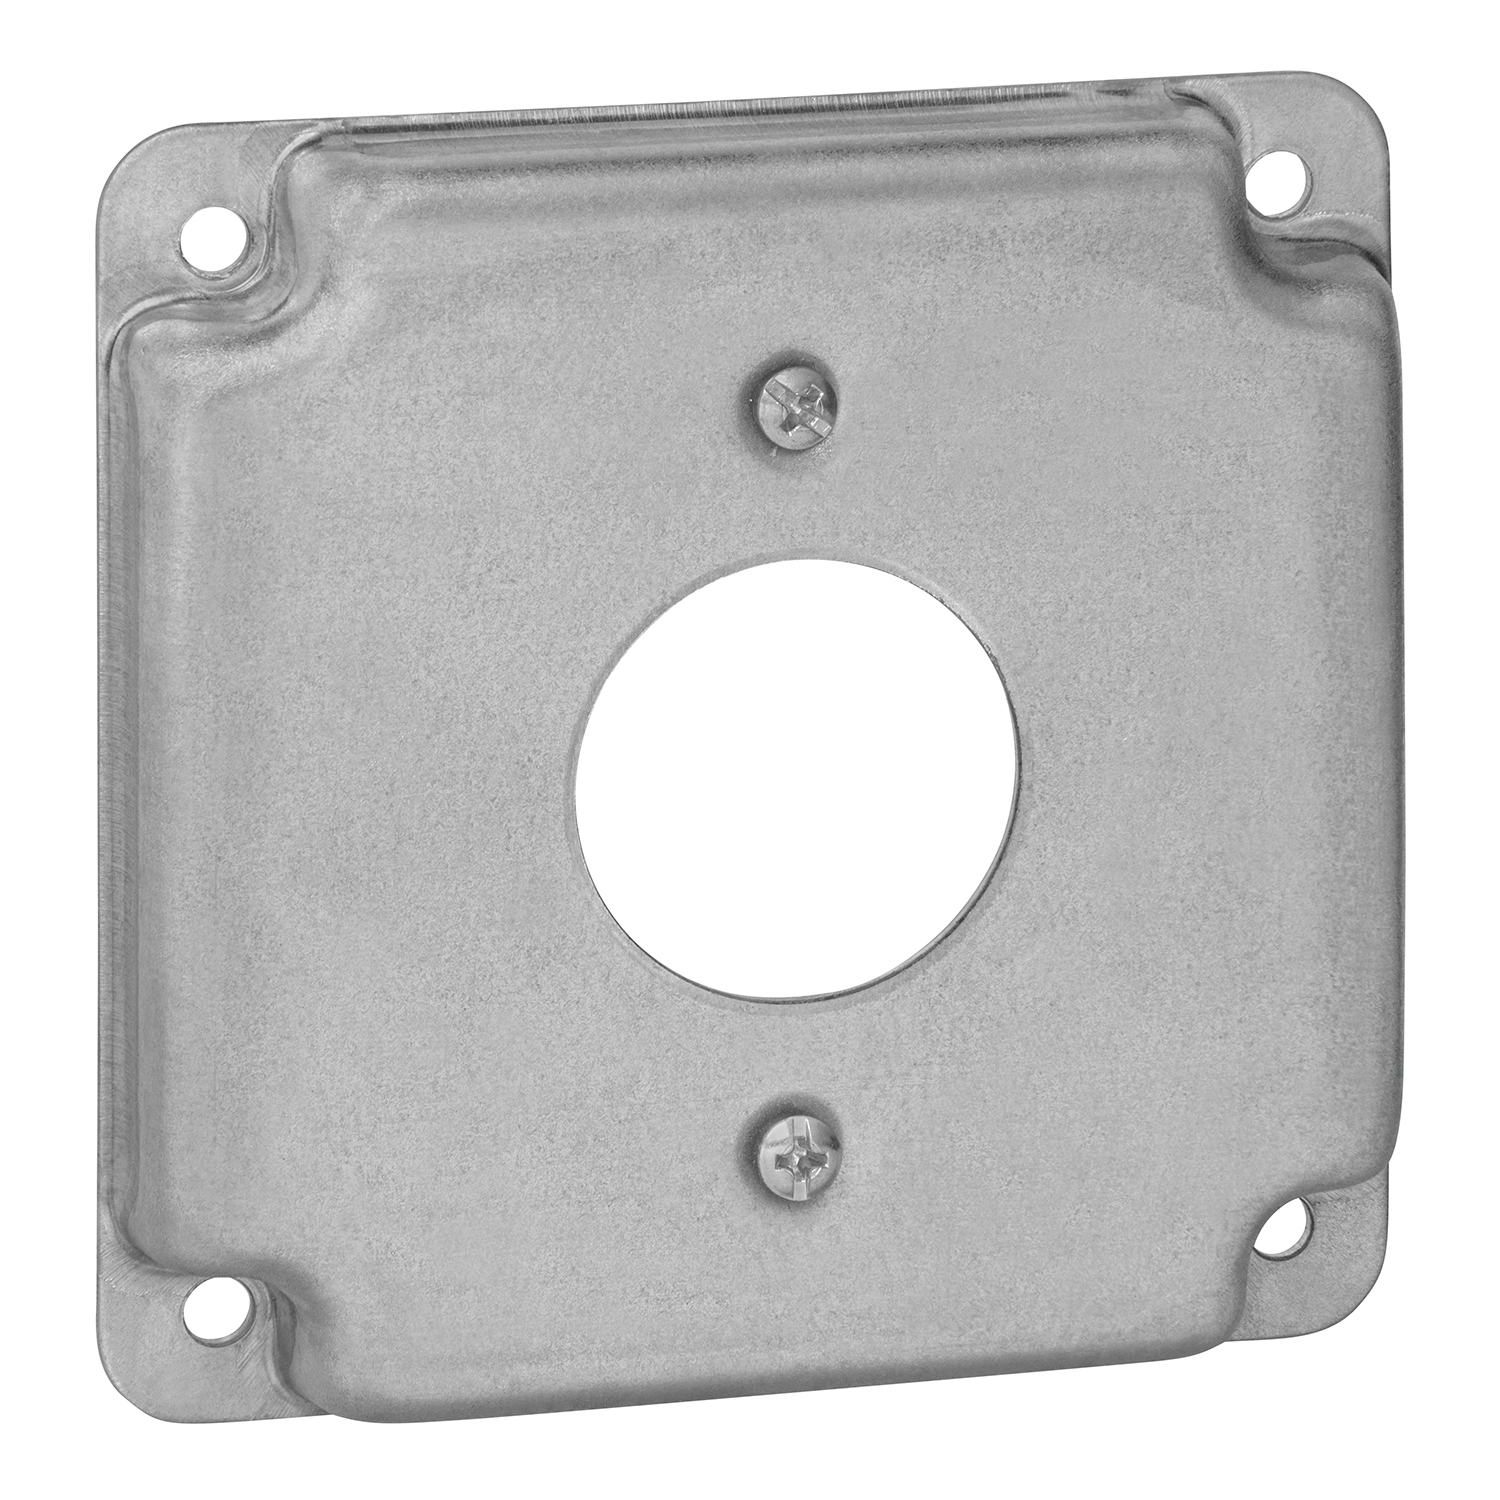 STEELCTY RS11 STEEL COVER USE W/1 SINGLE FLUSH RECEPTACLE